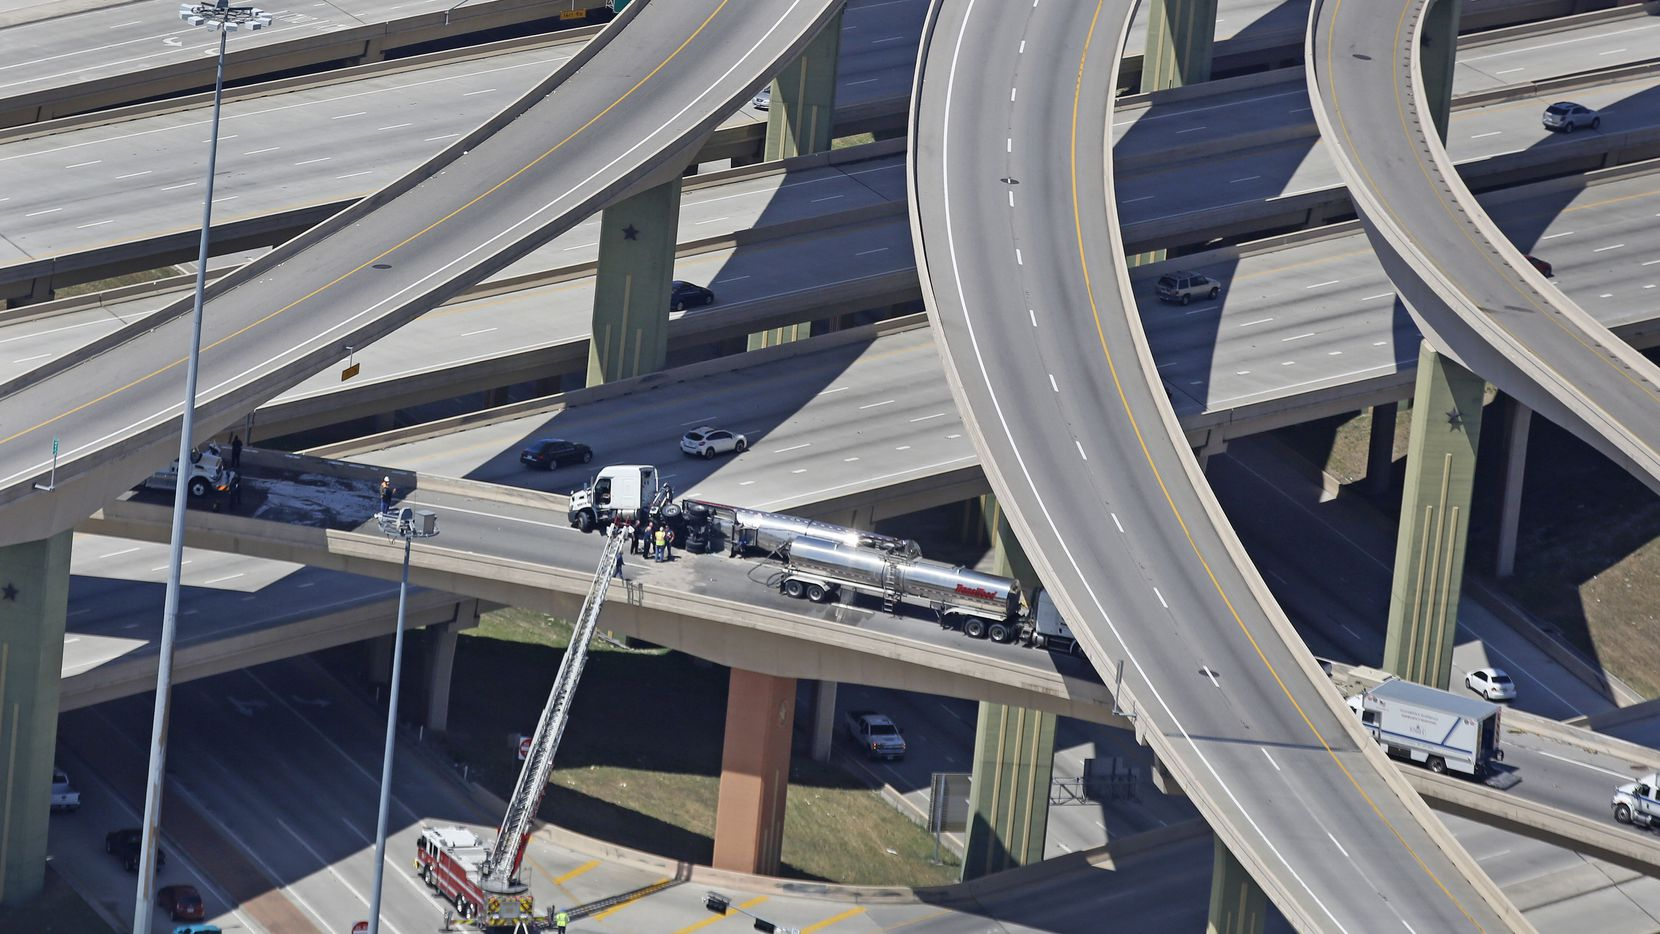 The Intersection of Interstate 635 and Highway 75 north of downtown Dallas closed after an overturned truck carrying hazardous materials crashed Thursday.